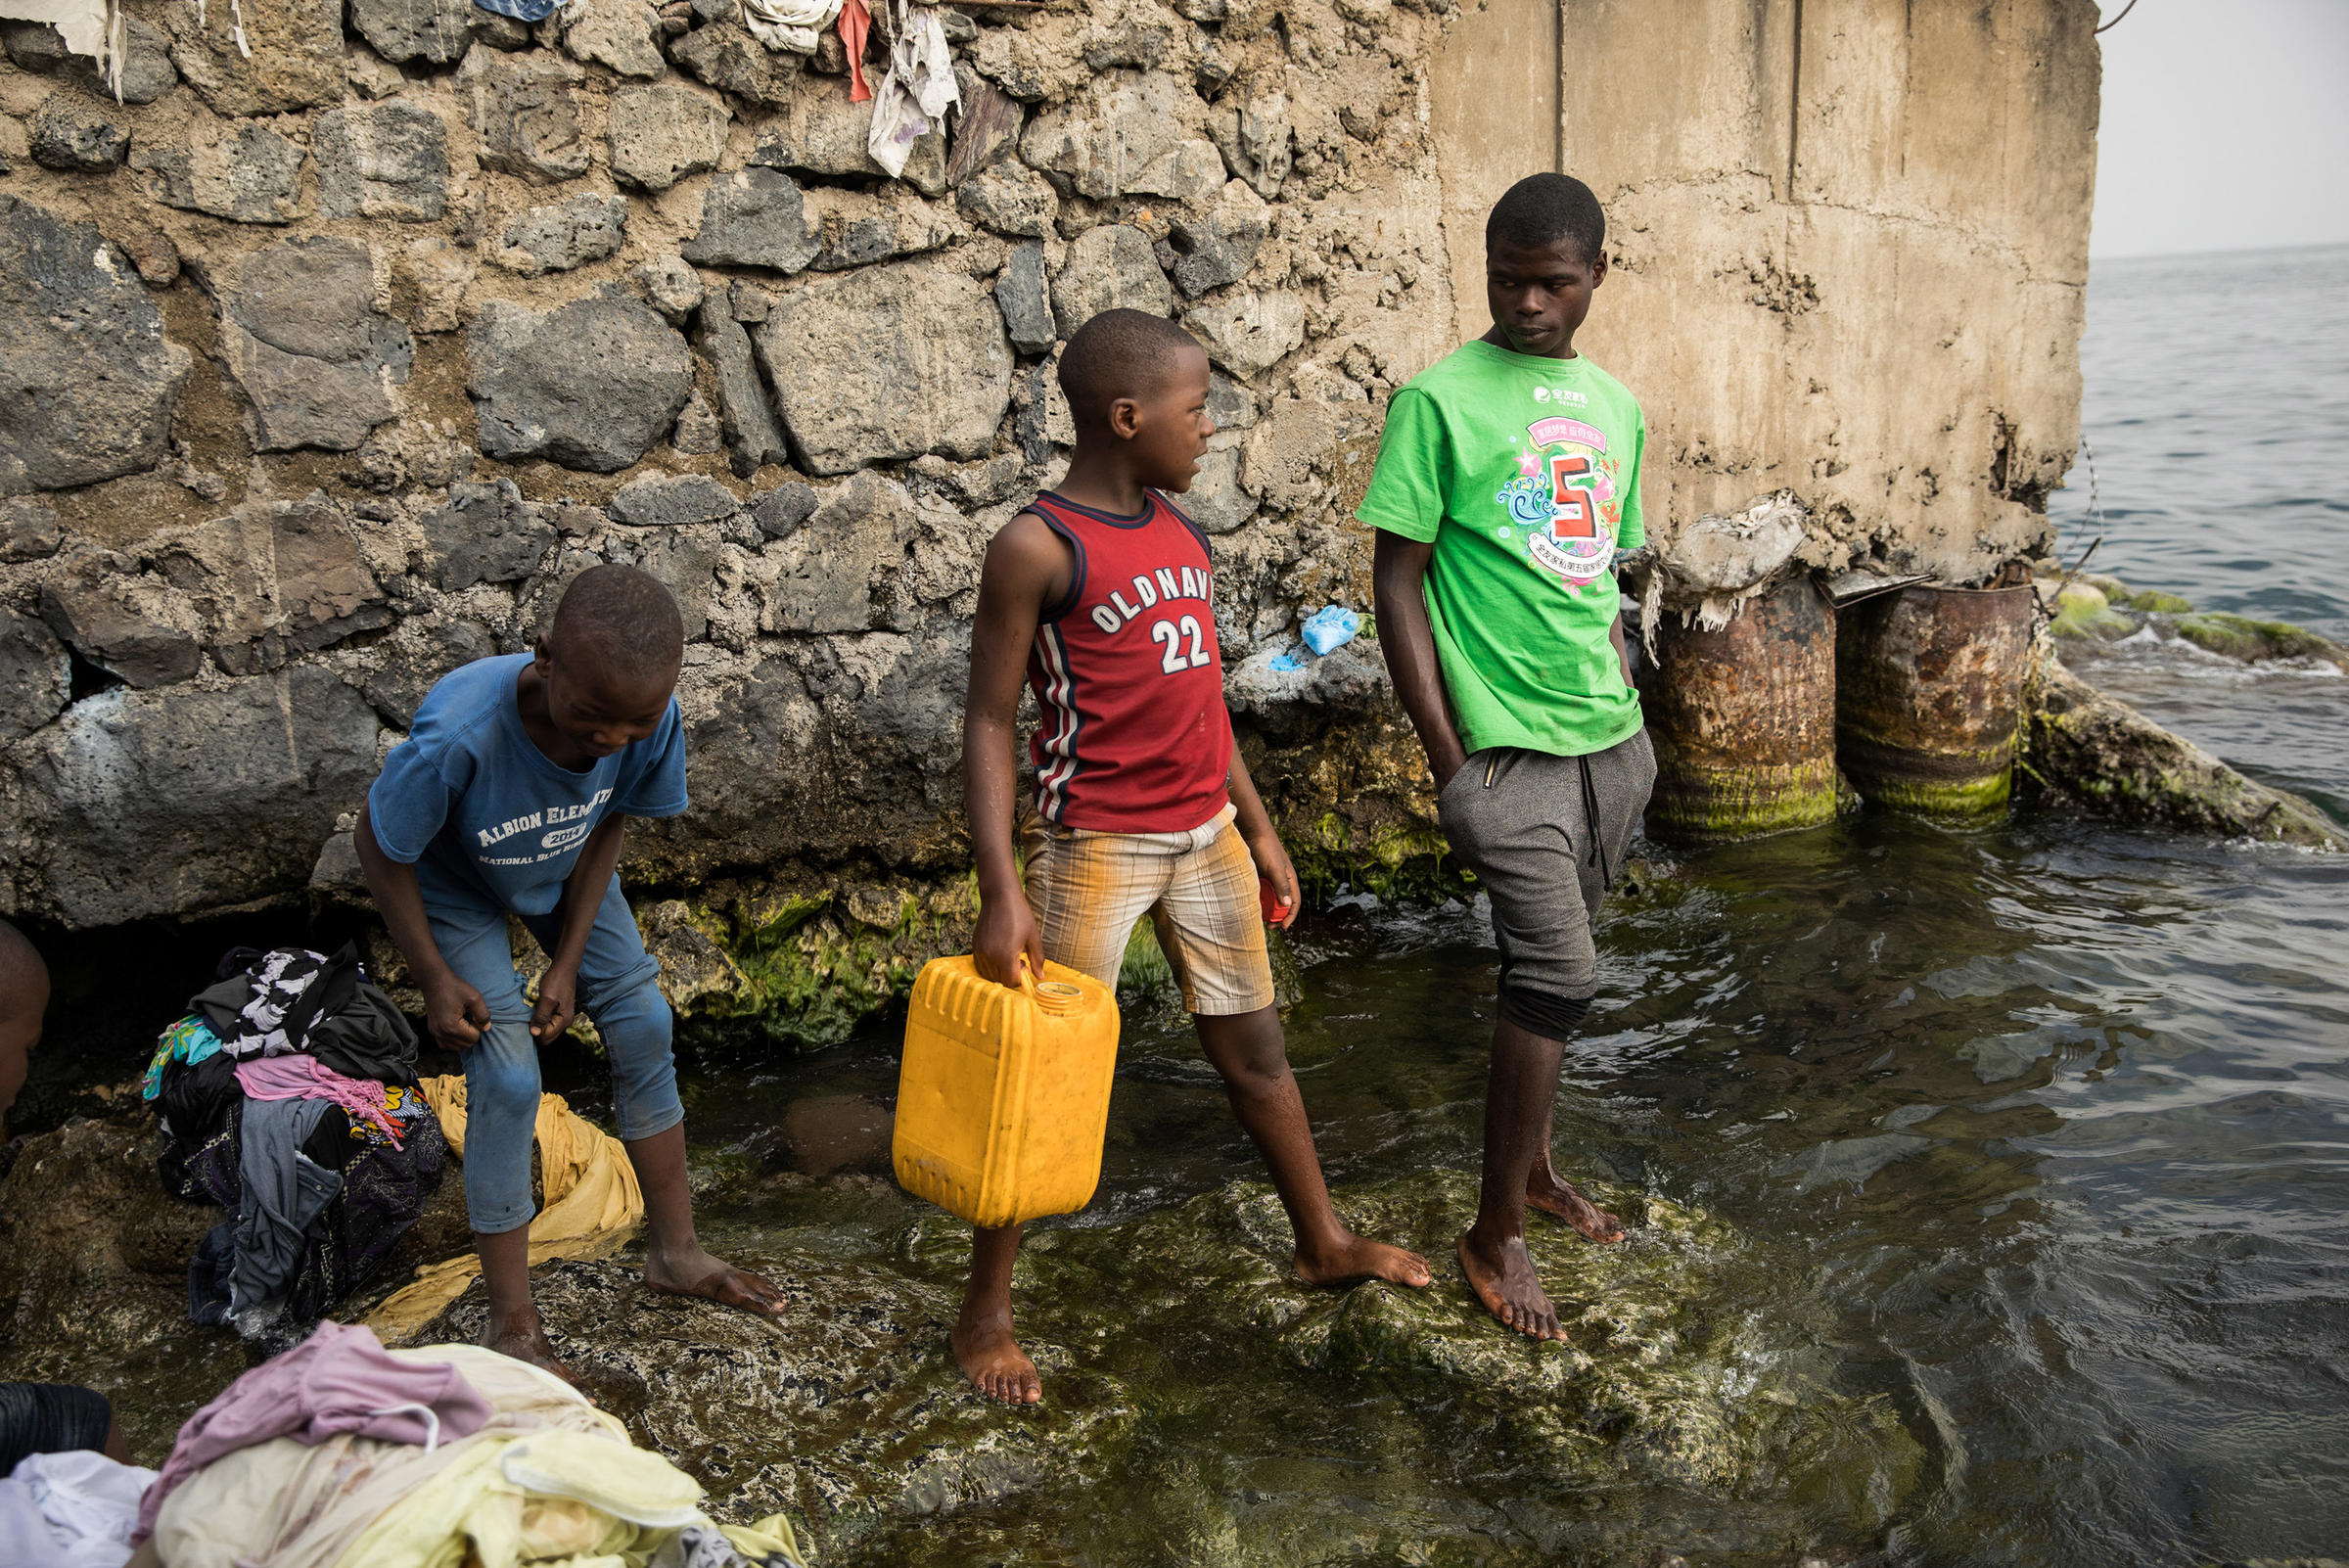 A City In Congo Dodged Ebola. But Residents Have Another Big Worry